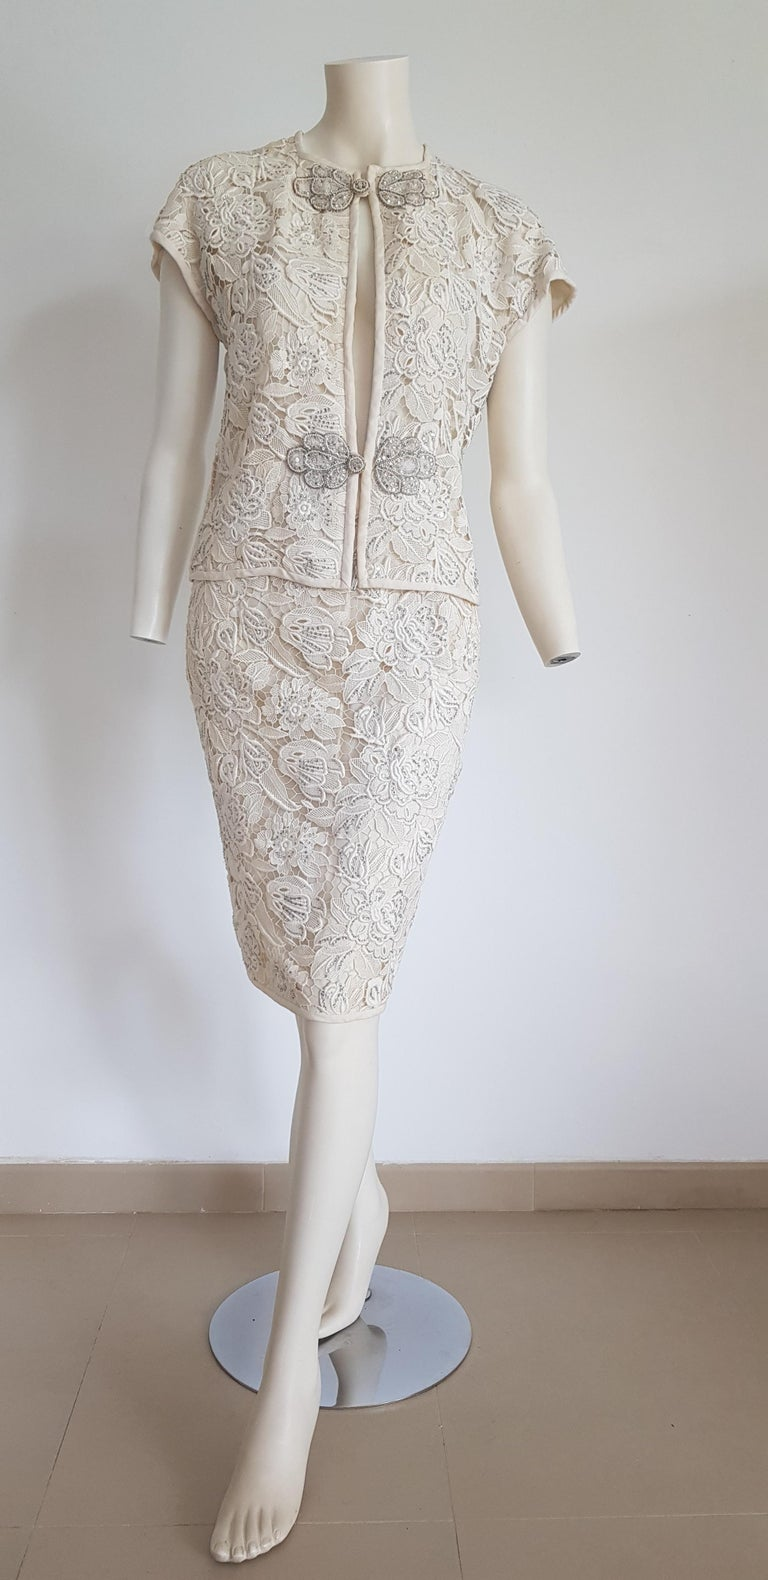 Women's VALENTINO Haute Couture Swarovski Diamonds Embroidered Lace Beige Suit - Unworn For Sale